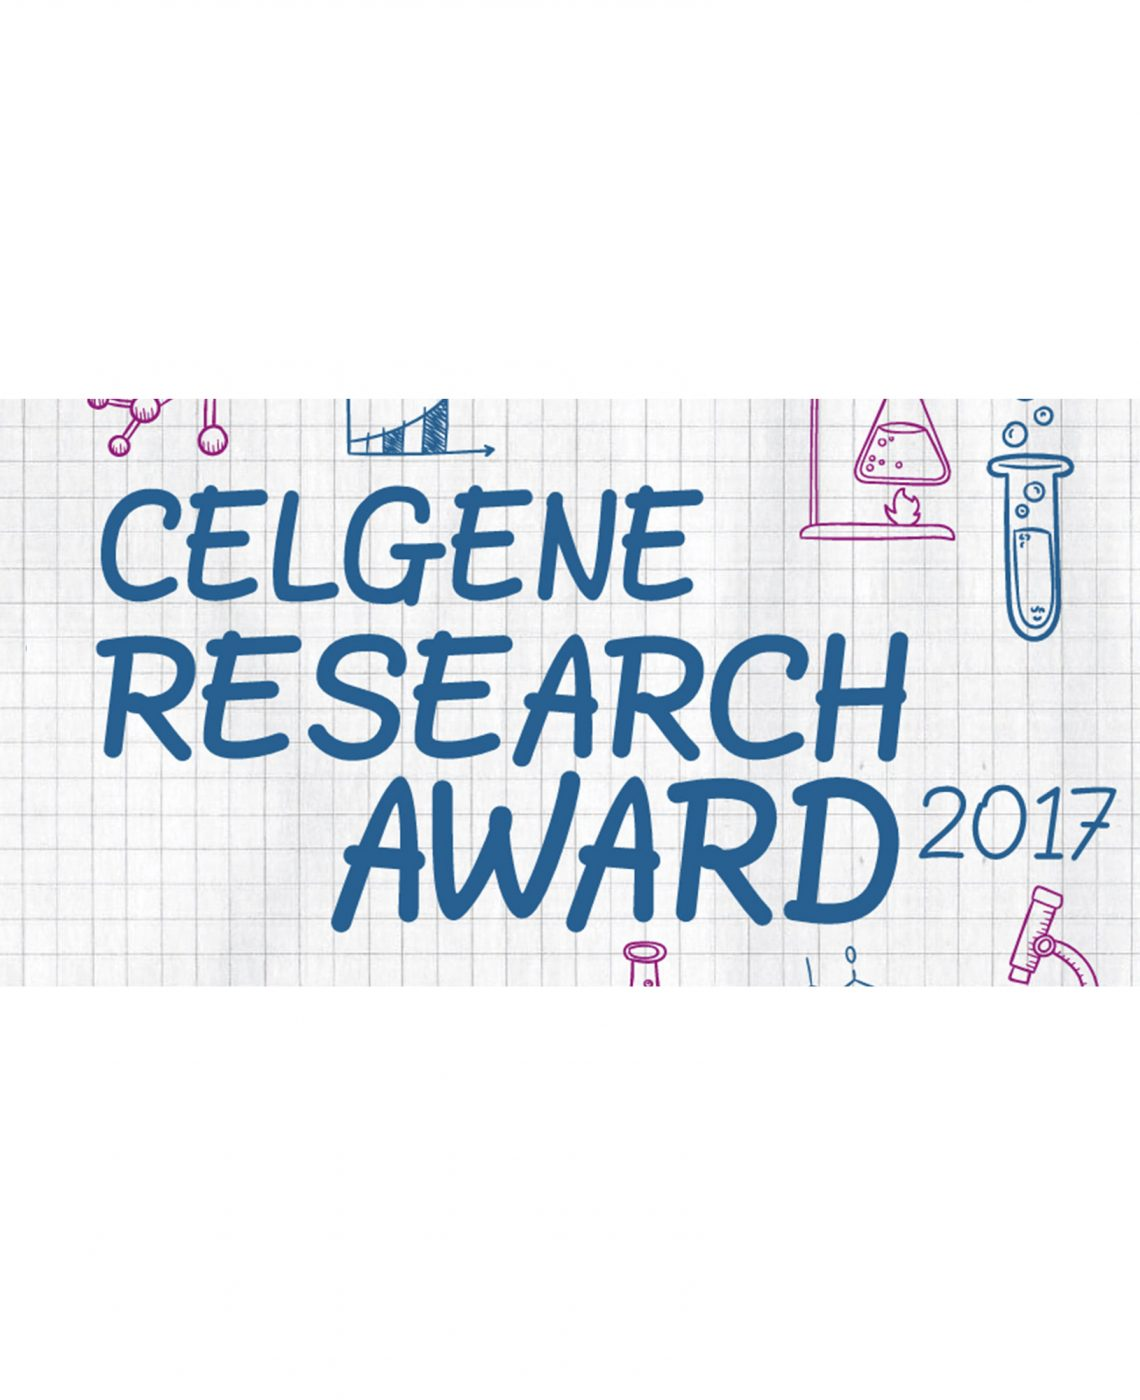 Celgene Research Award 2017